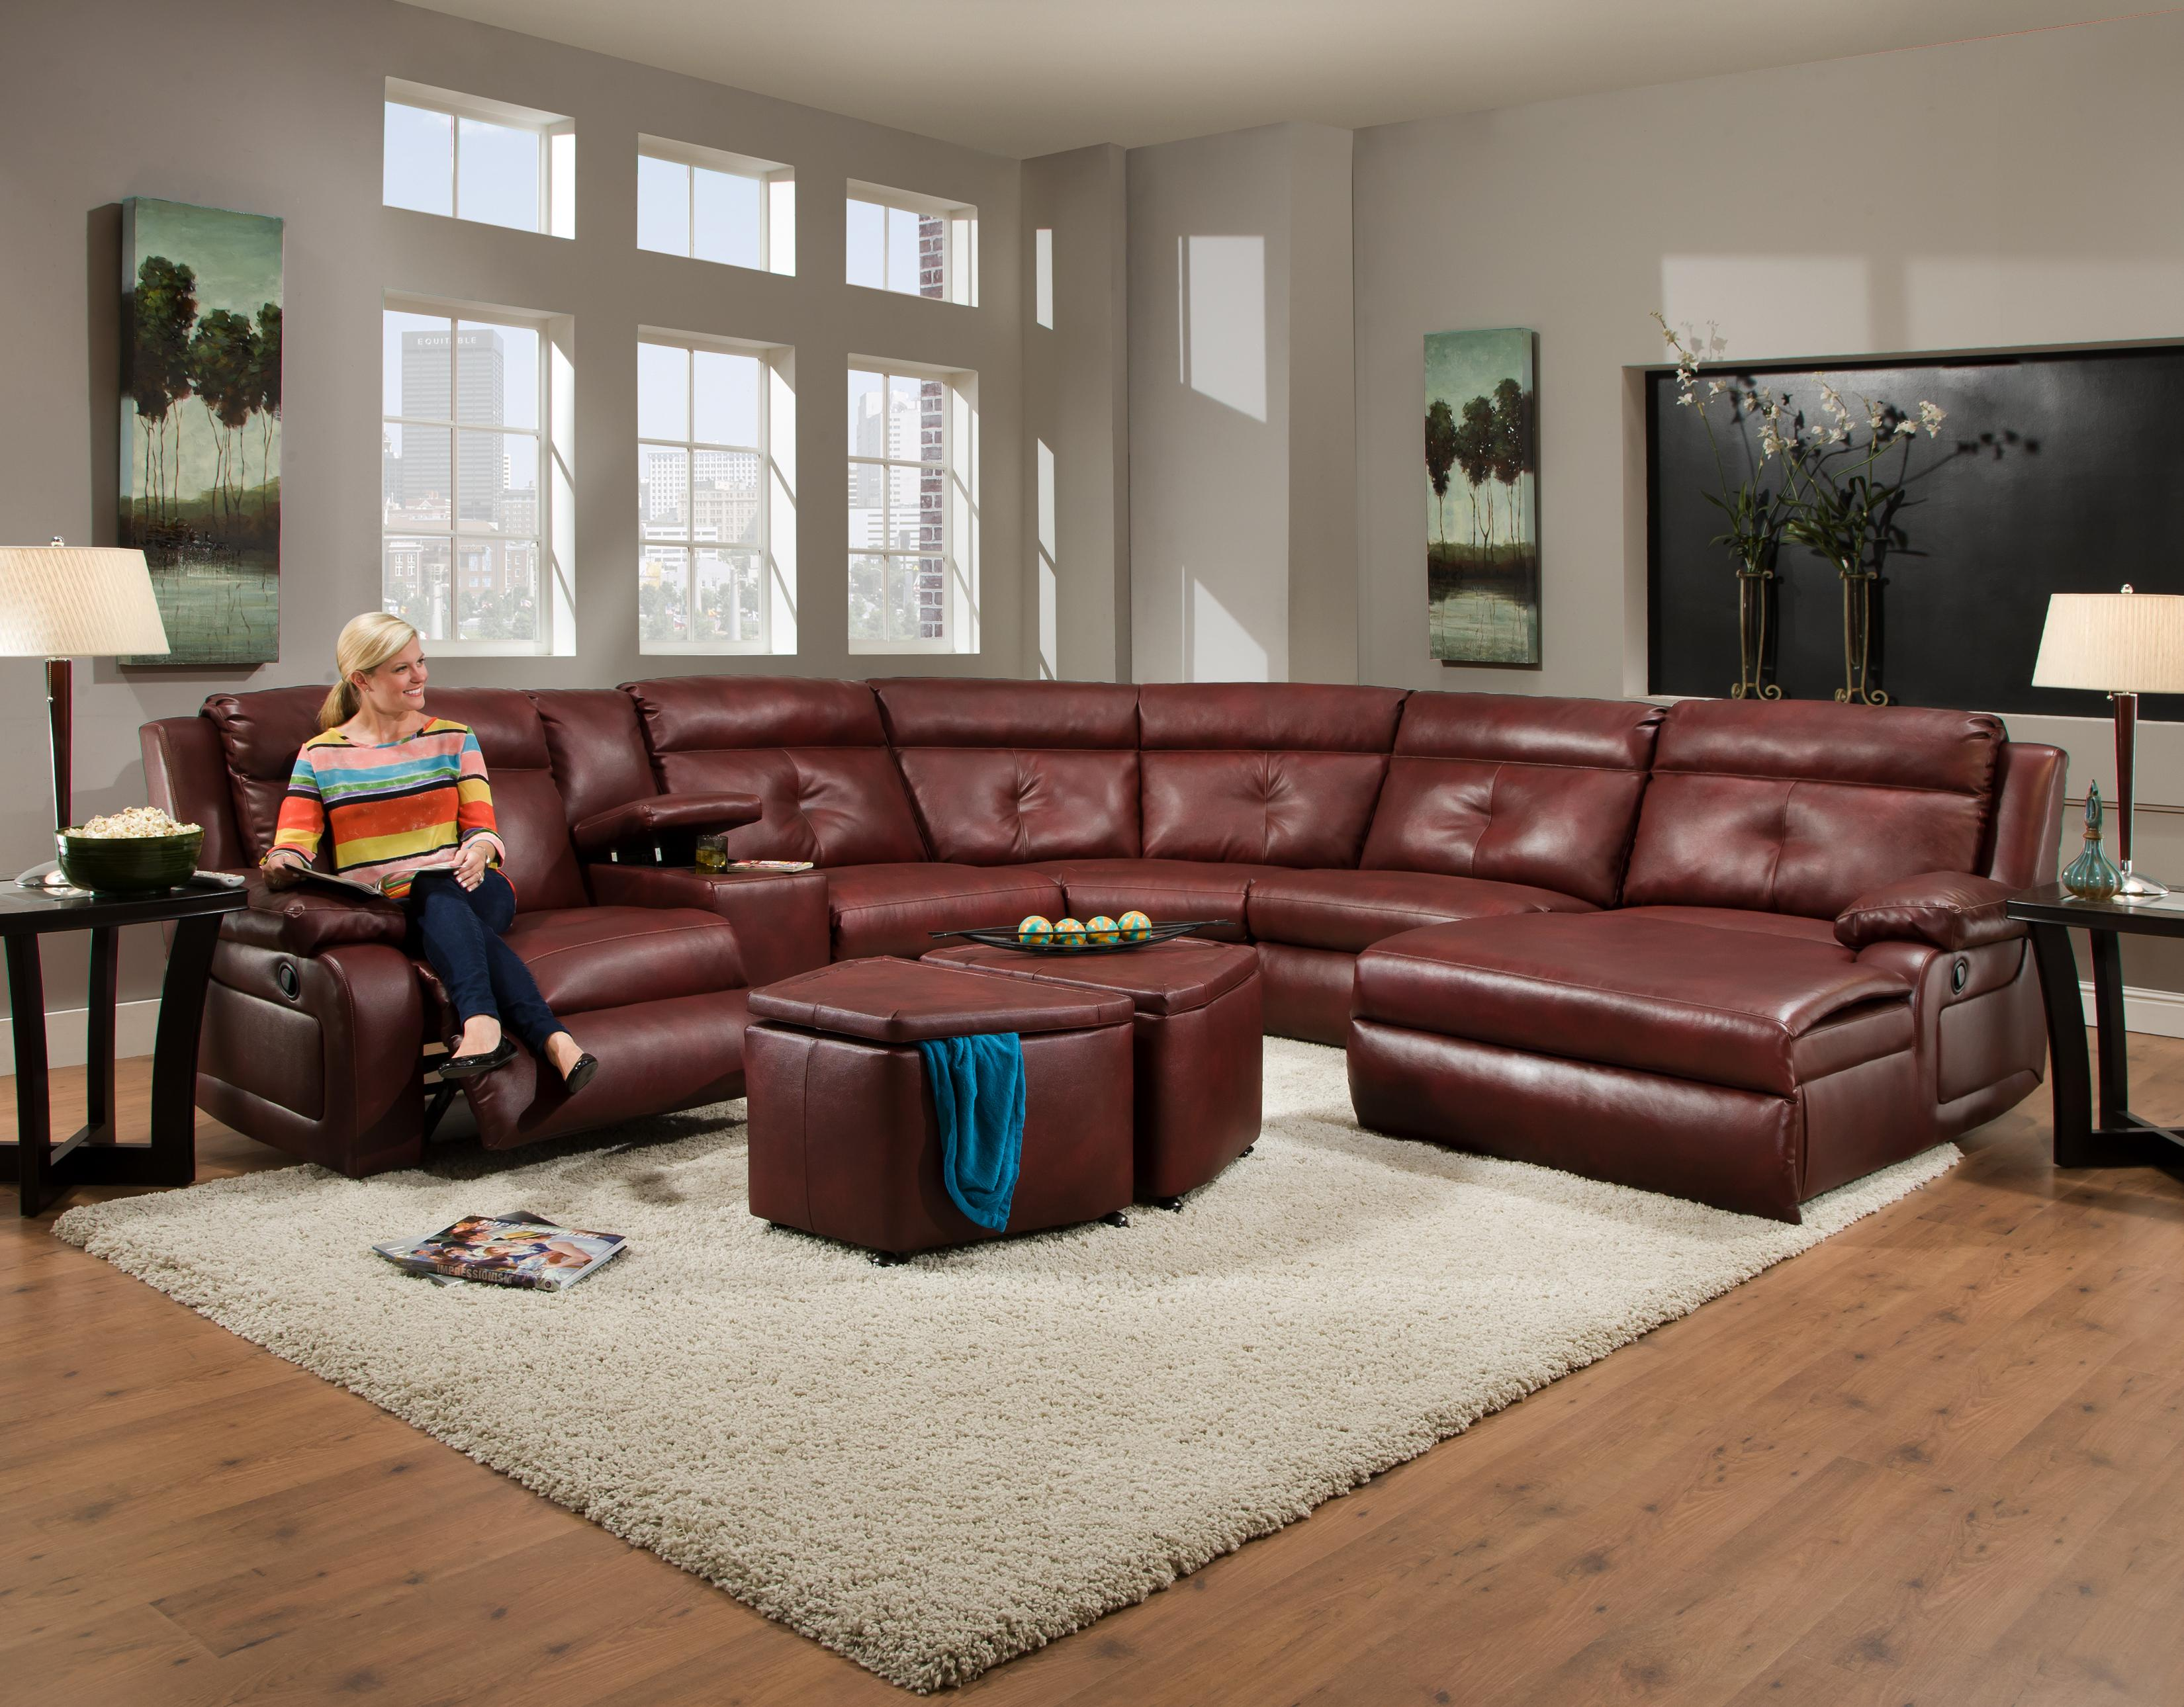 Southern Motion Dash Reclining Sectional with Chaise and Console   Item  Number  574 07. Southern Motion Dash Contemporary Styled Reclining Sectional Sofa